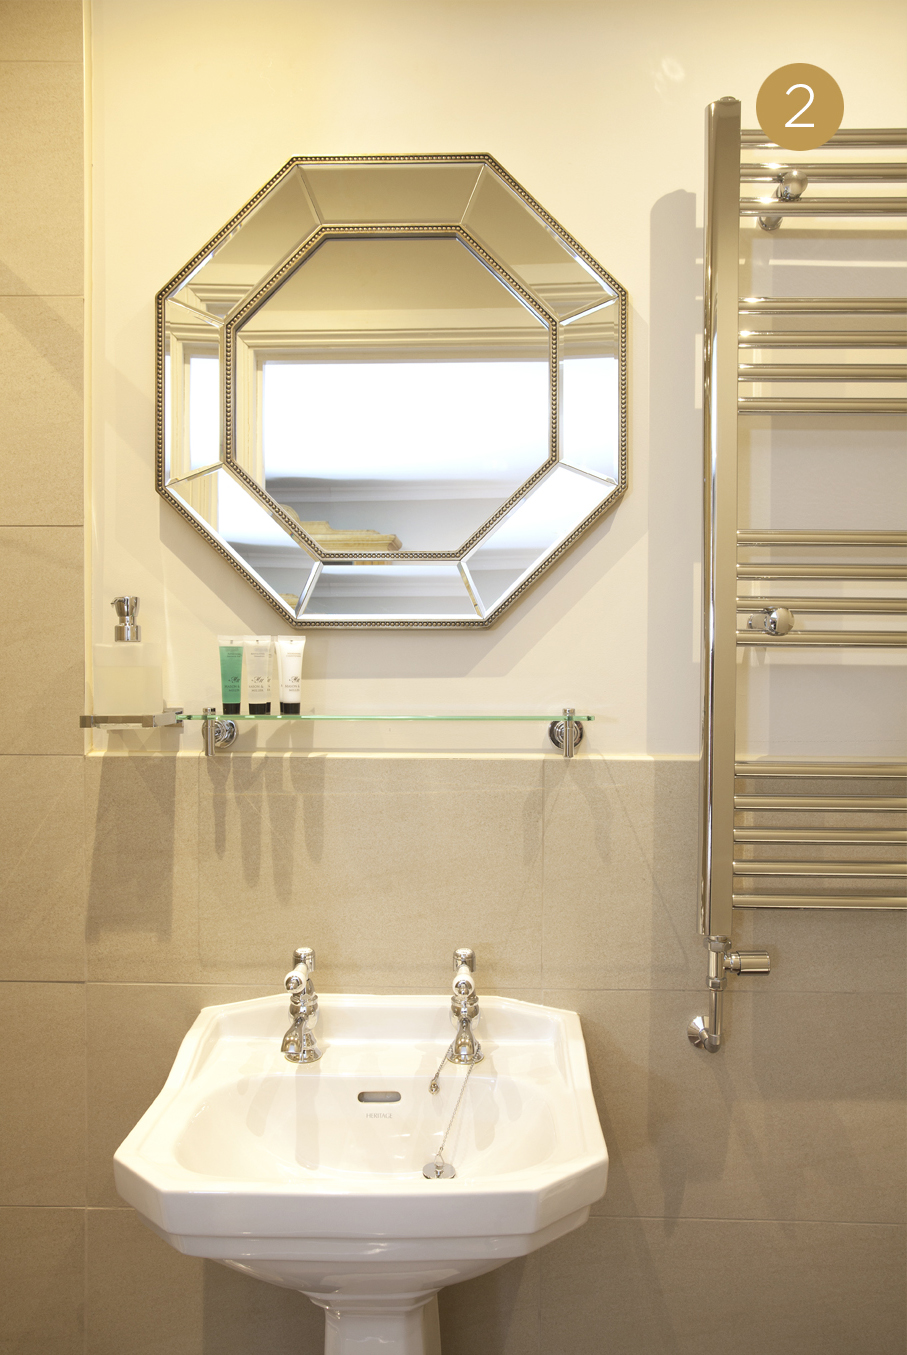 Bathroom No2.jpg